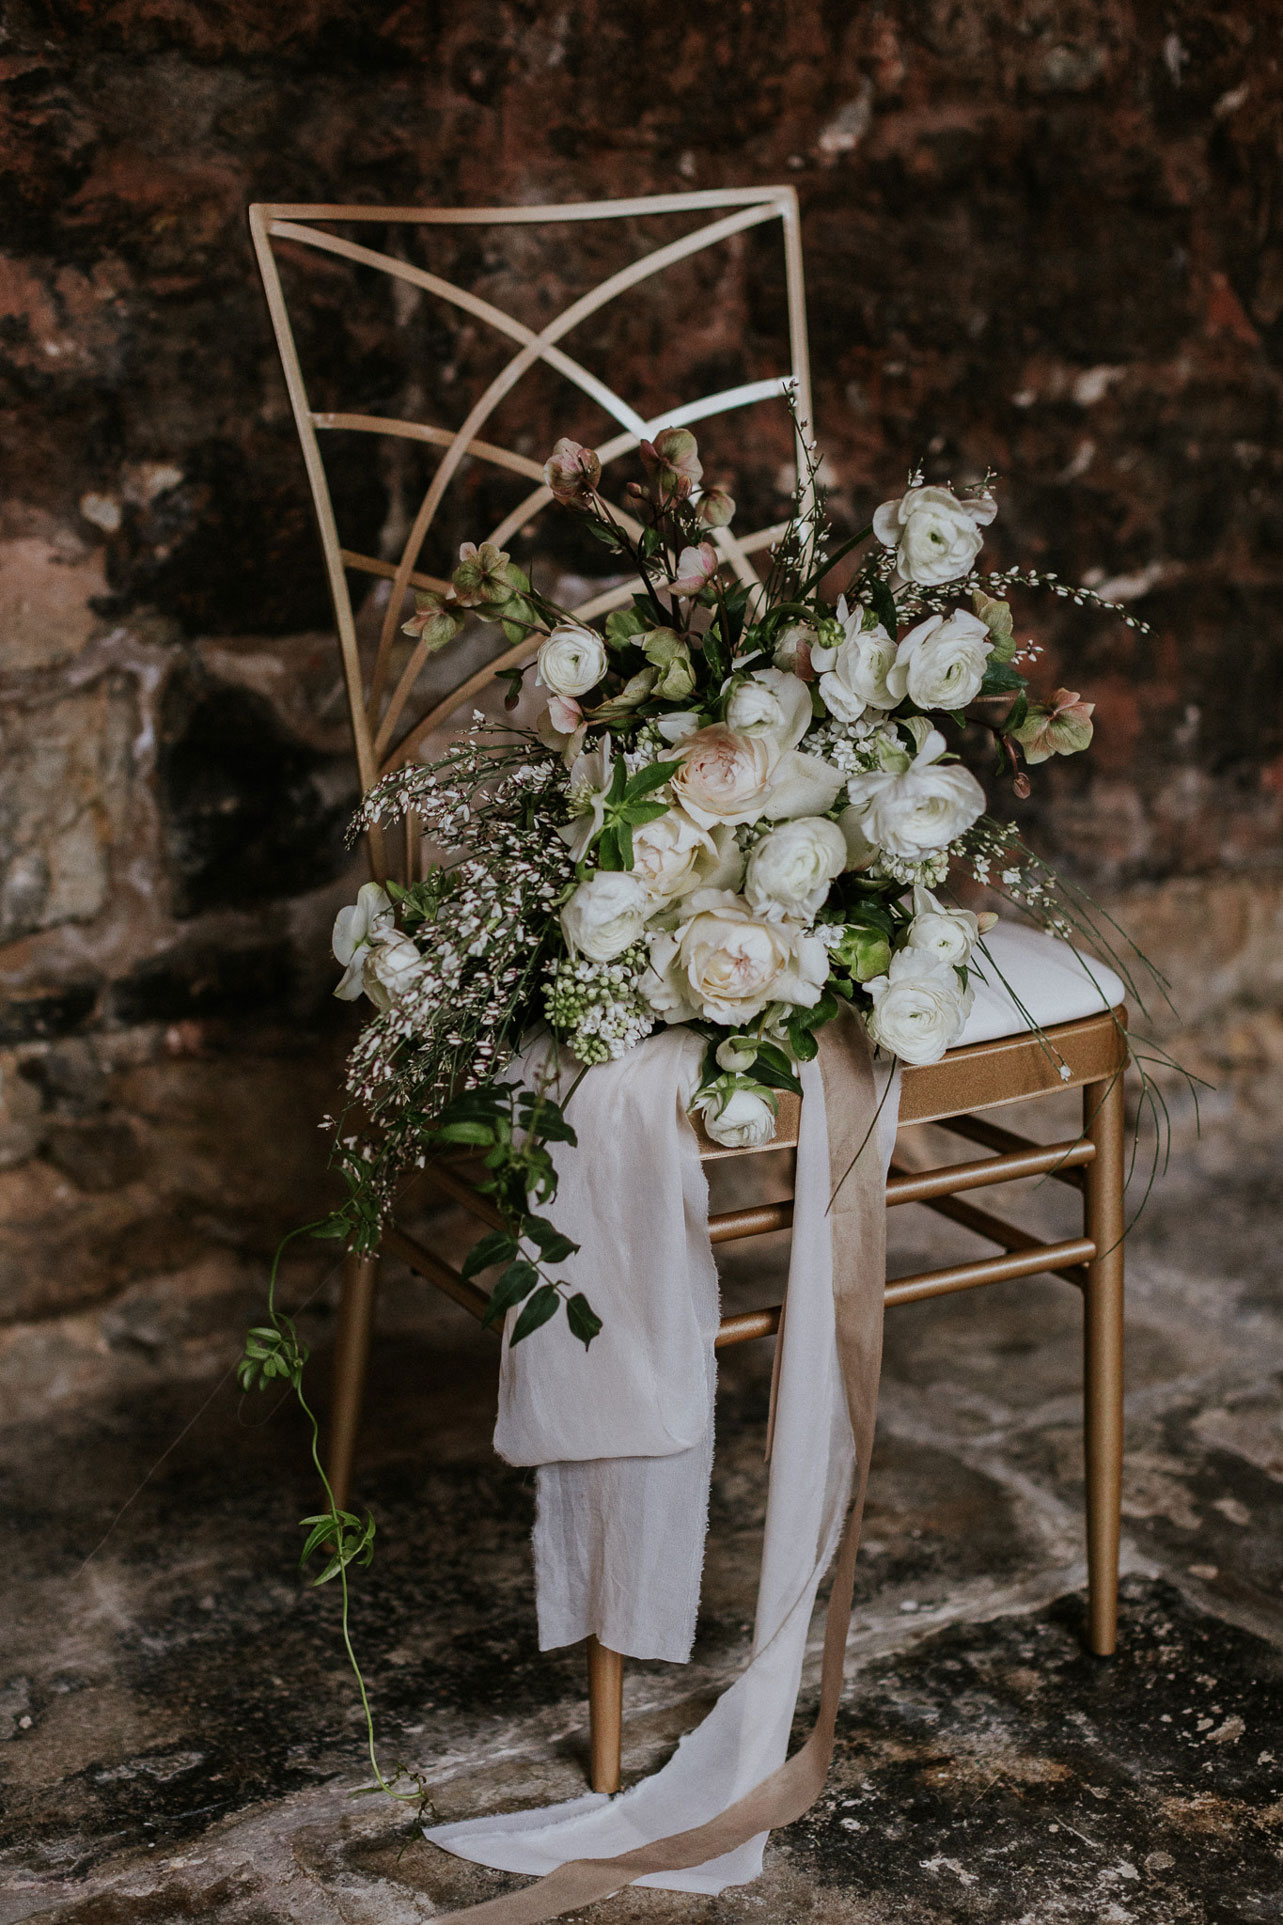 Leigh filled the beautiful bouquet with white blooms and leafy foliage for a beautiful sense of movement.